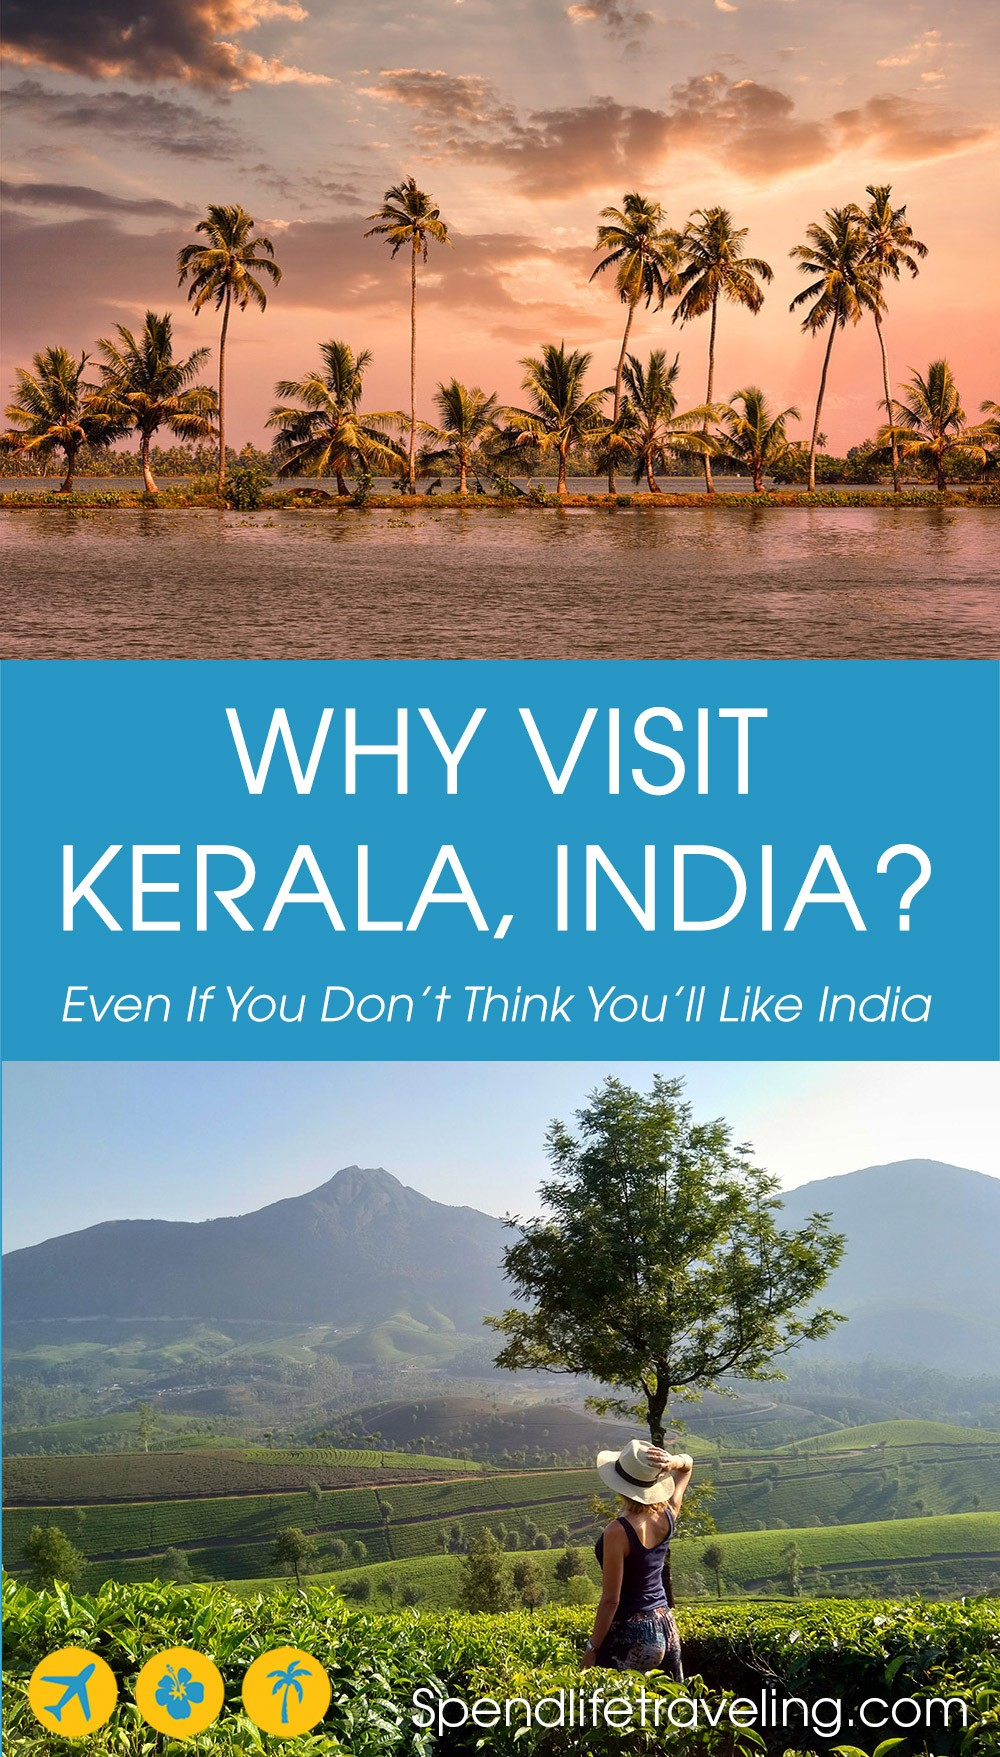 Why should you visit #Kerala? Because Kerala is beautiful and very different from the rest of #India... #visitKerala #travelKerala